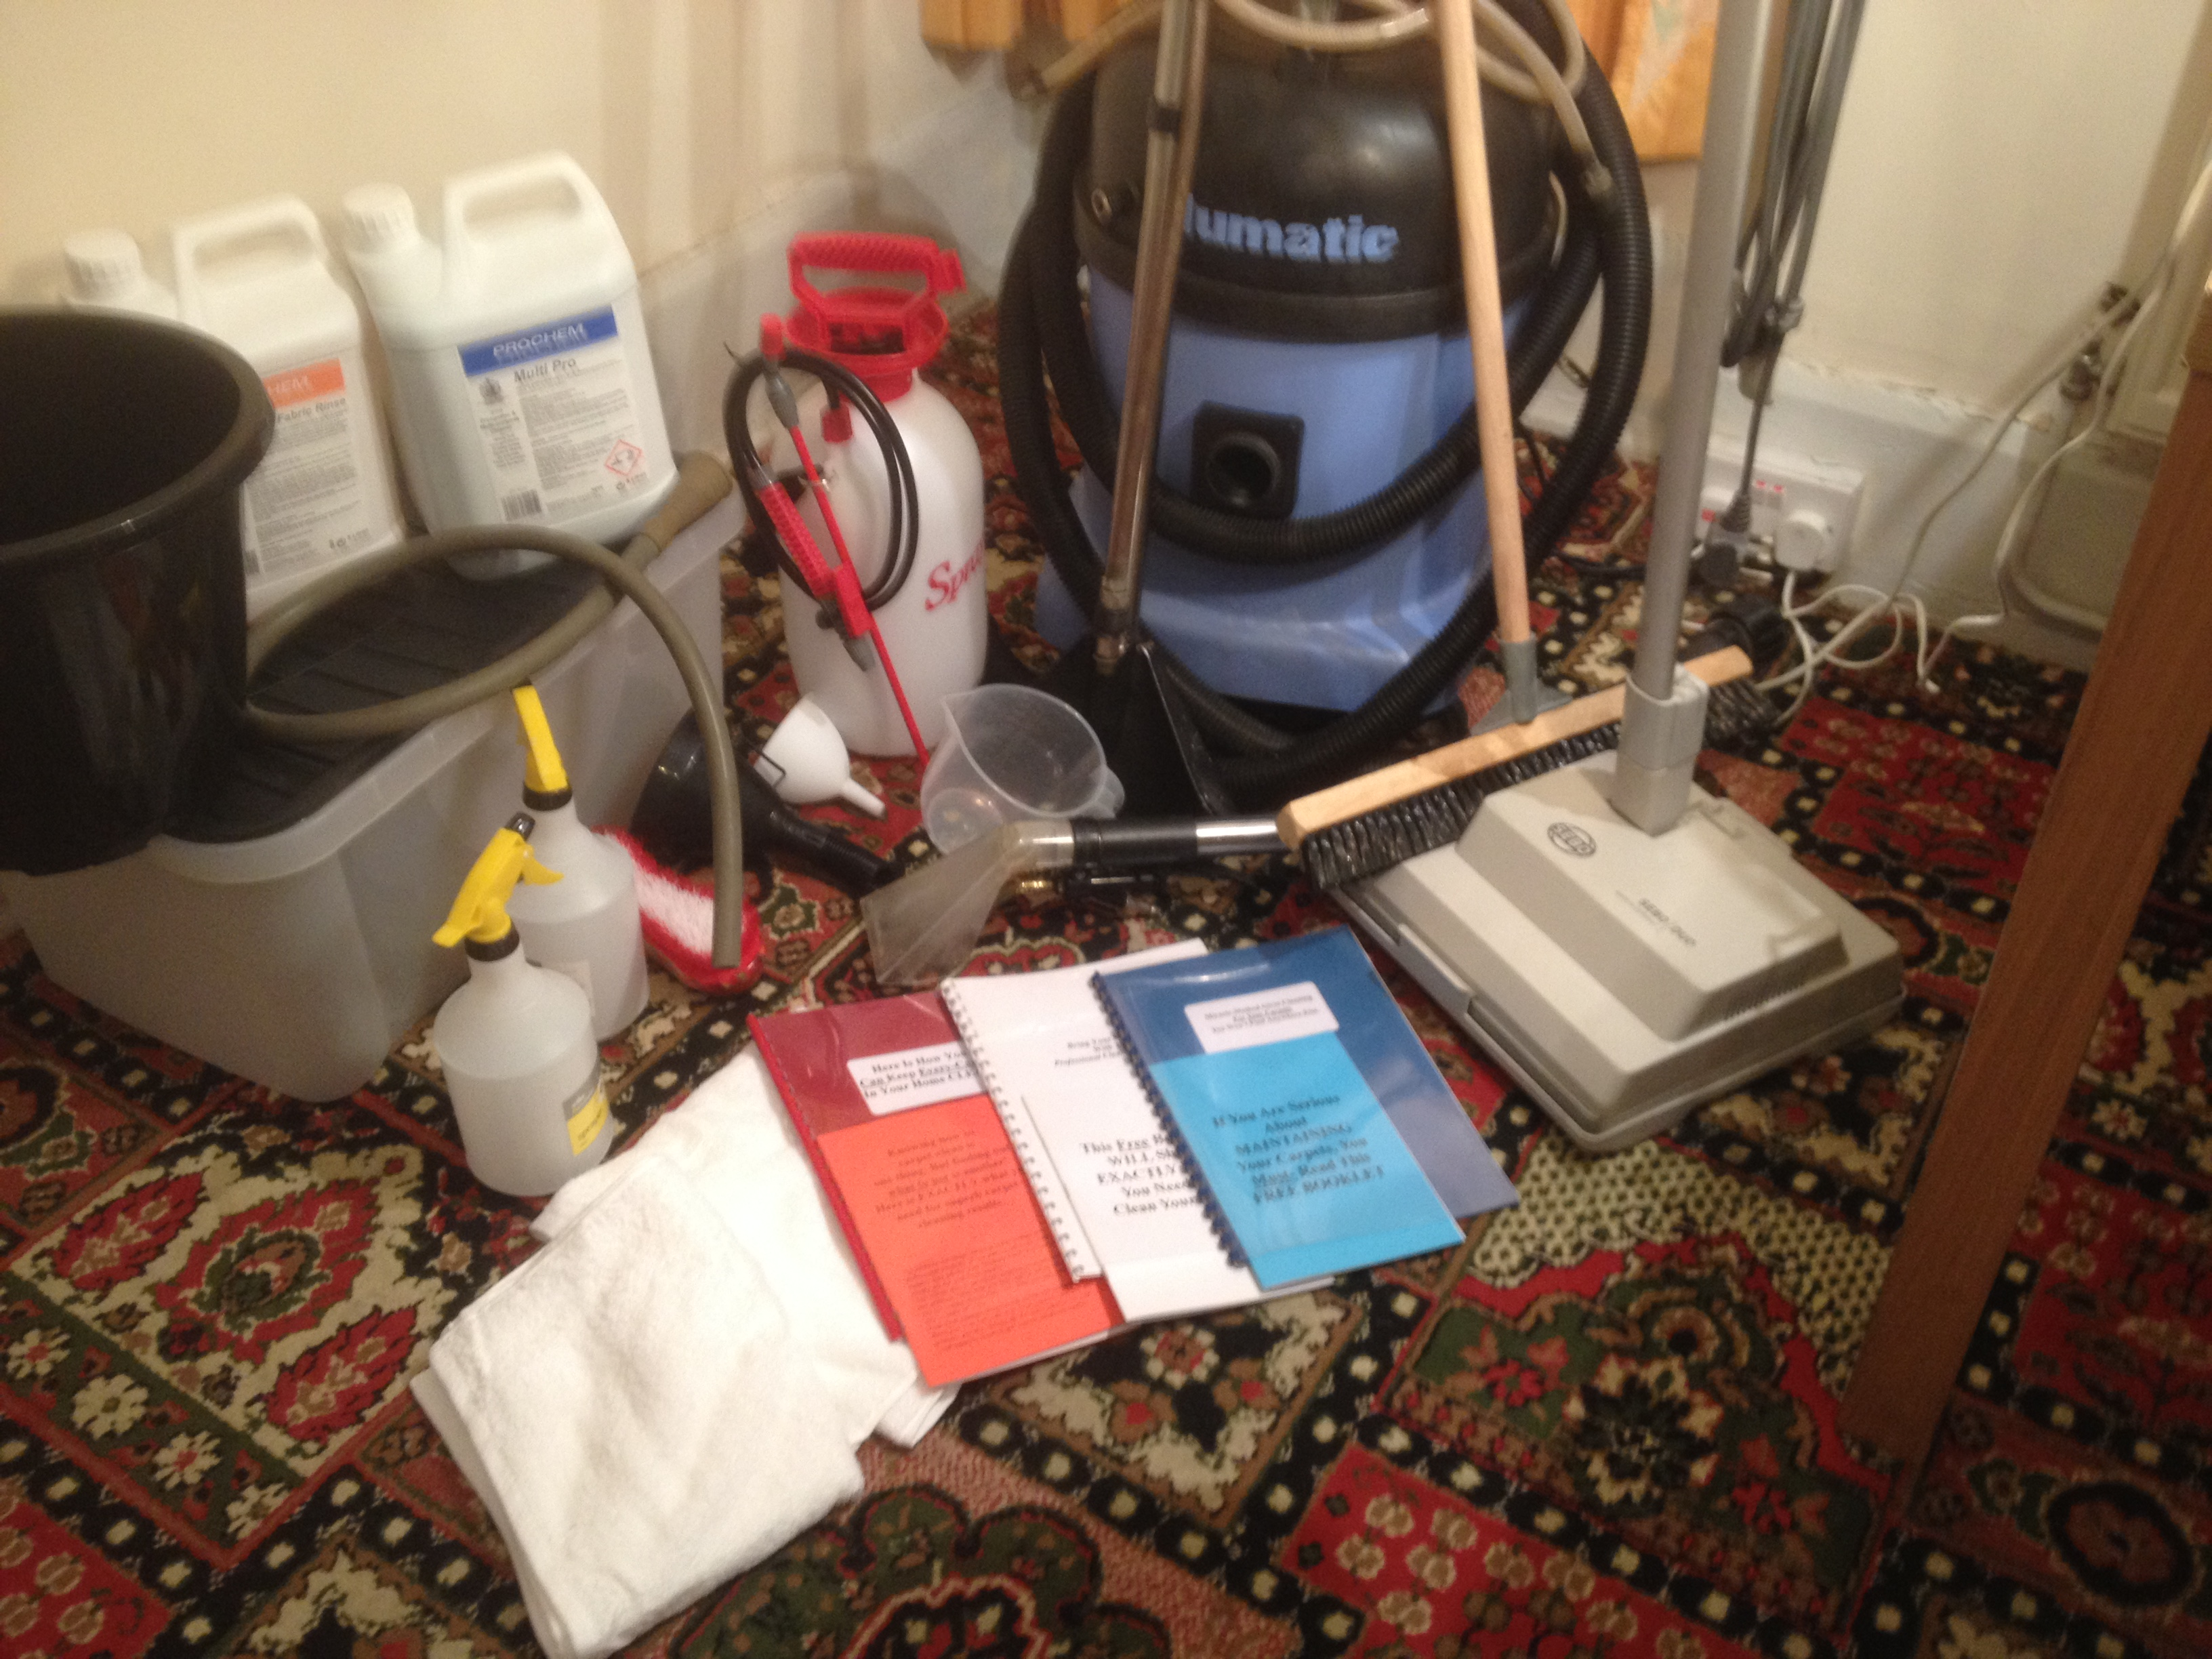 Package for DIY carpet cleaning